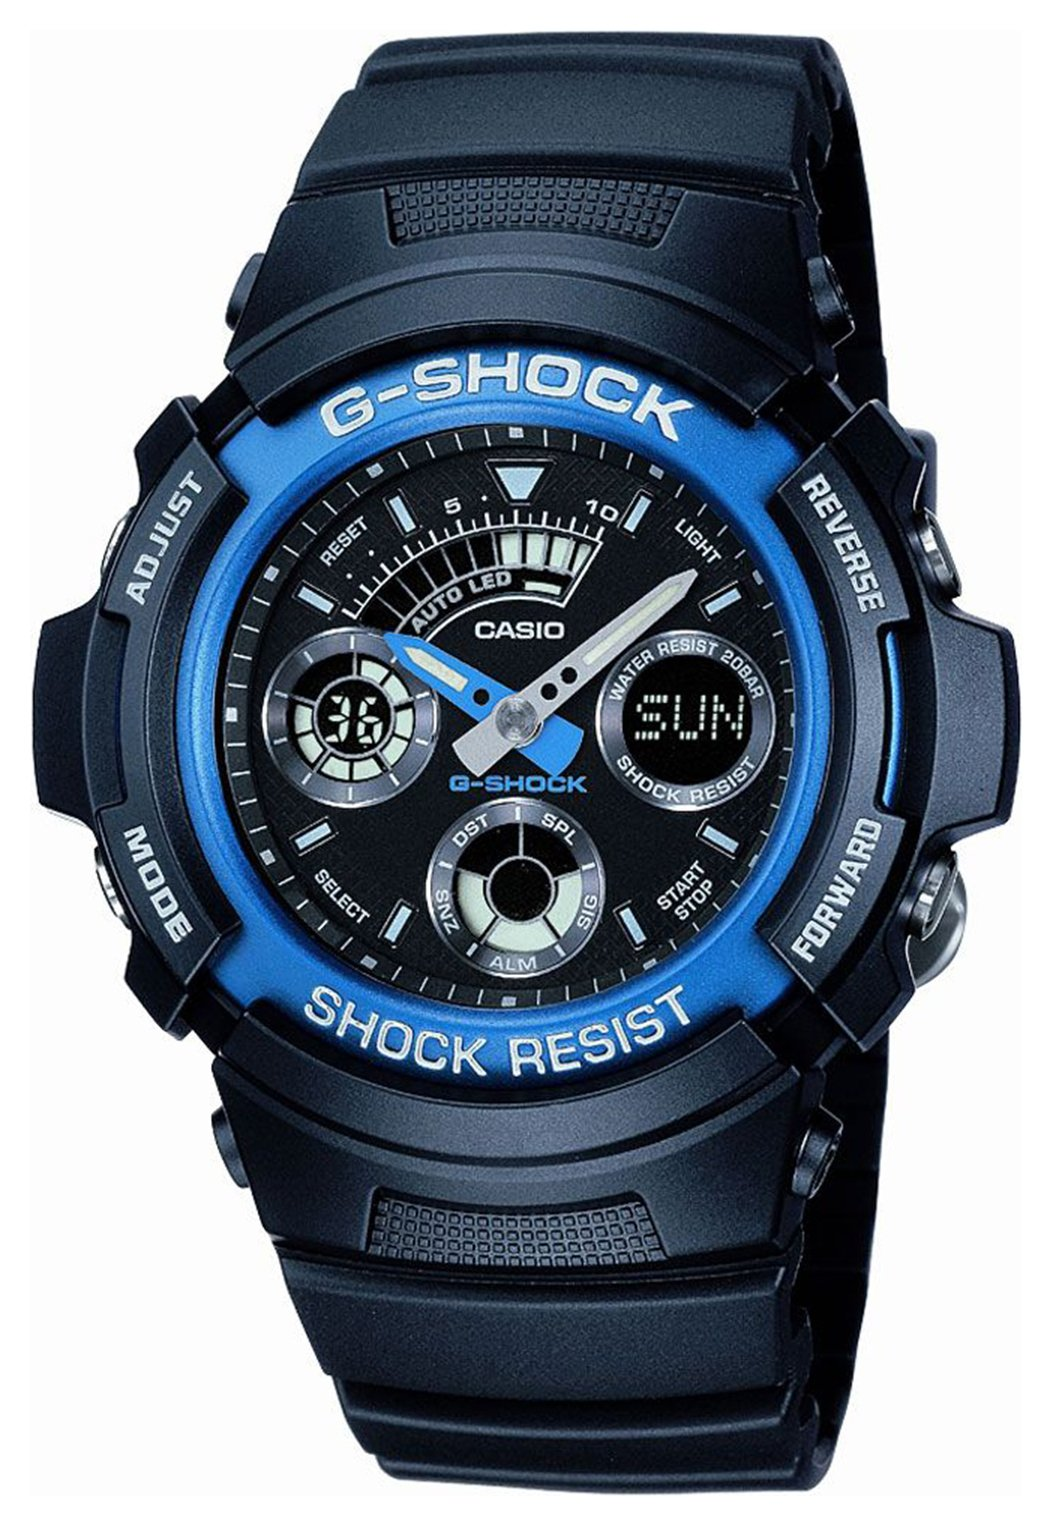 Casio review